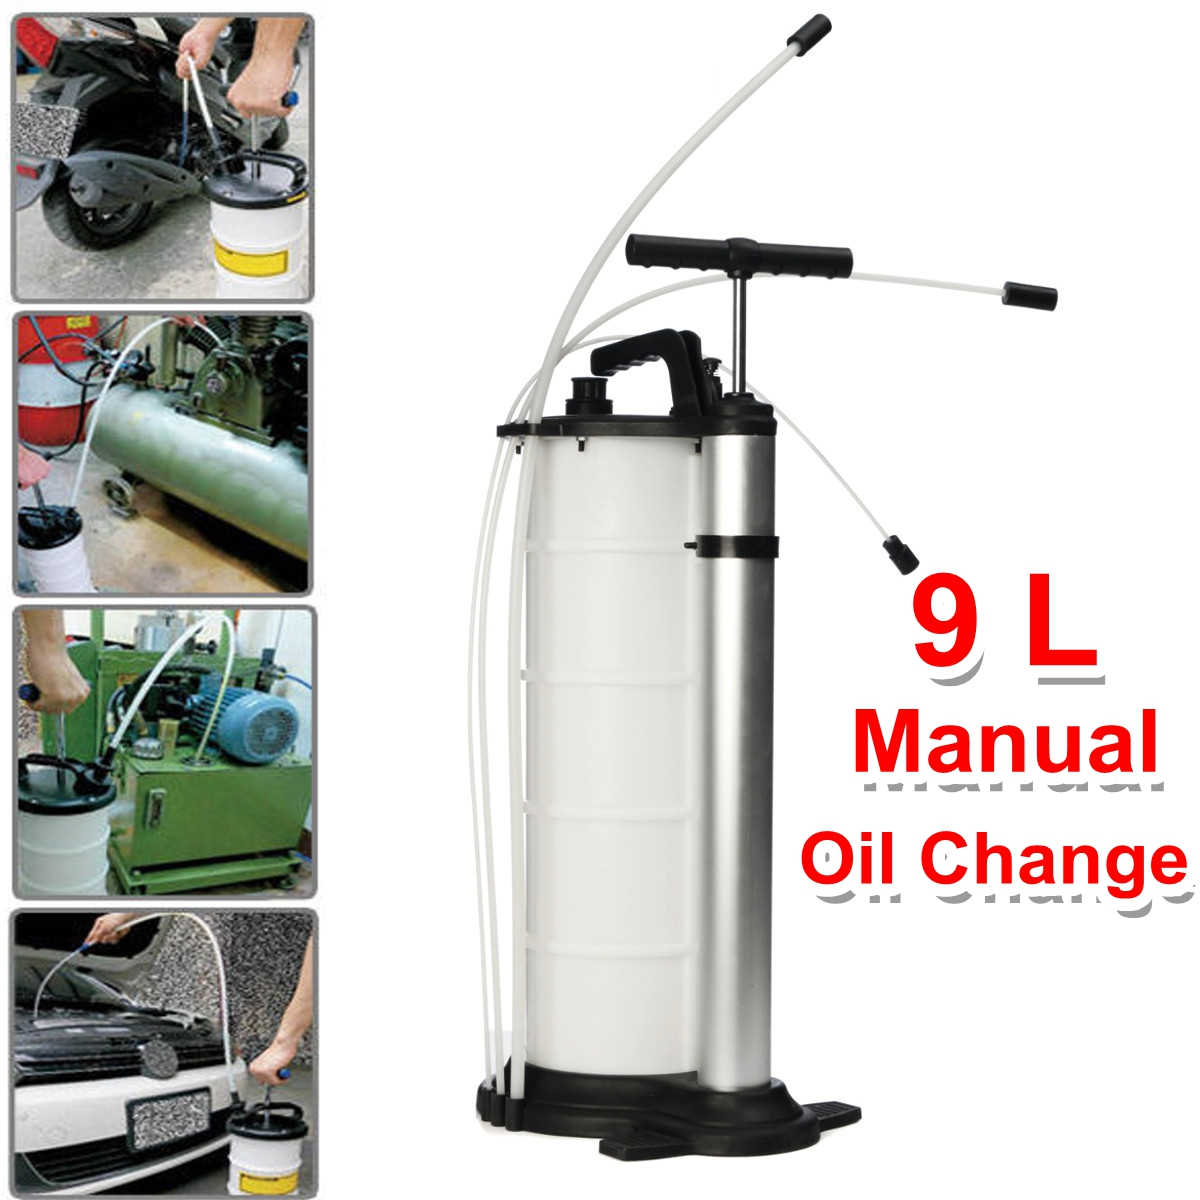 9L Vacuum Oil Fluid Suction Extractor Changer Manual Fuel Pump Tank Remover